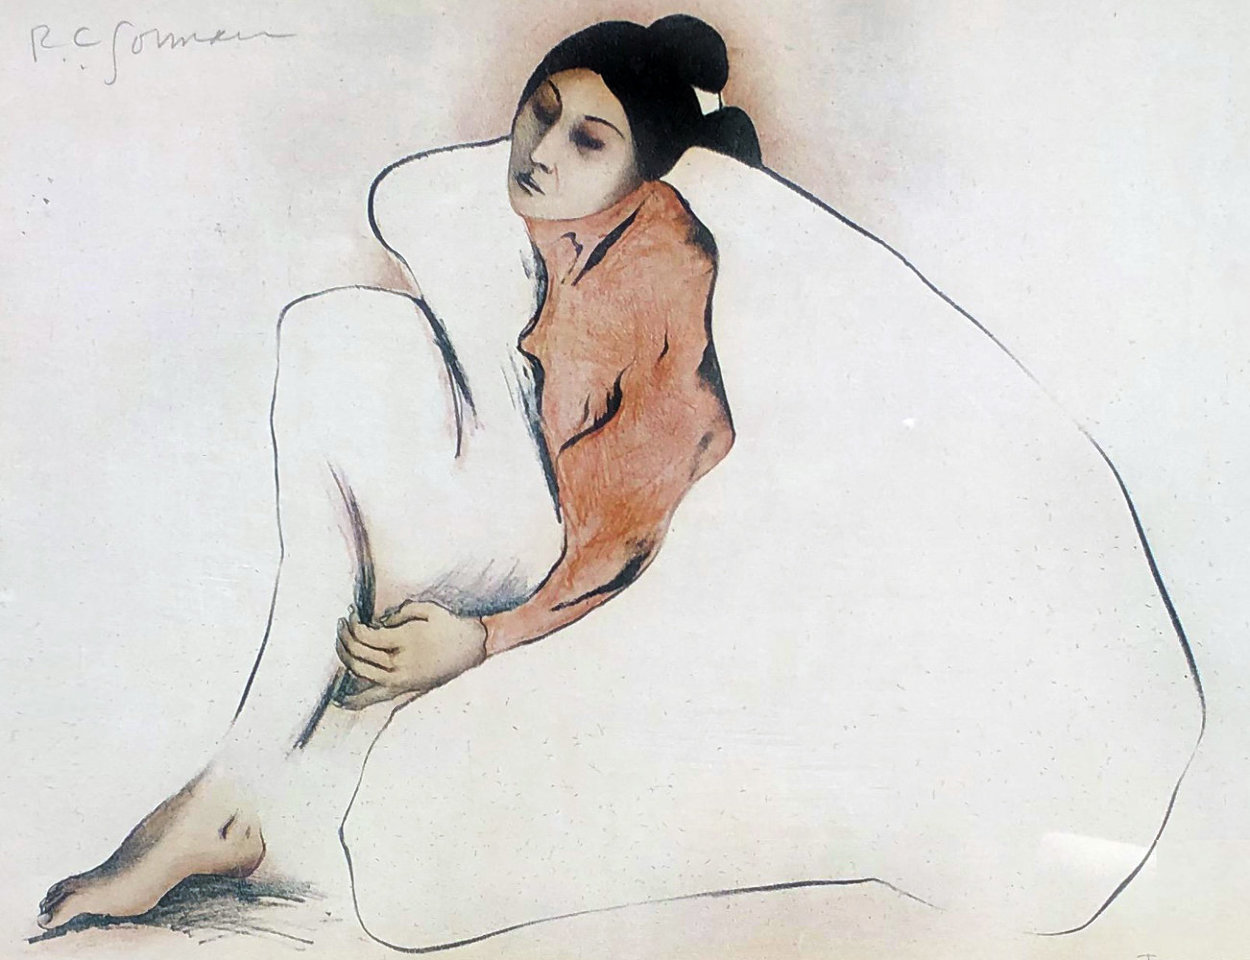 Woman From Indian Wells 1977 Limited Edition Print by R.C. Gorman